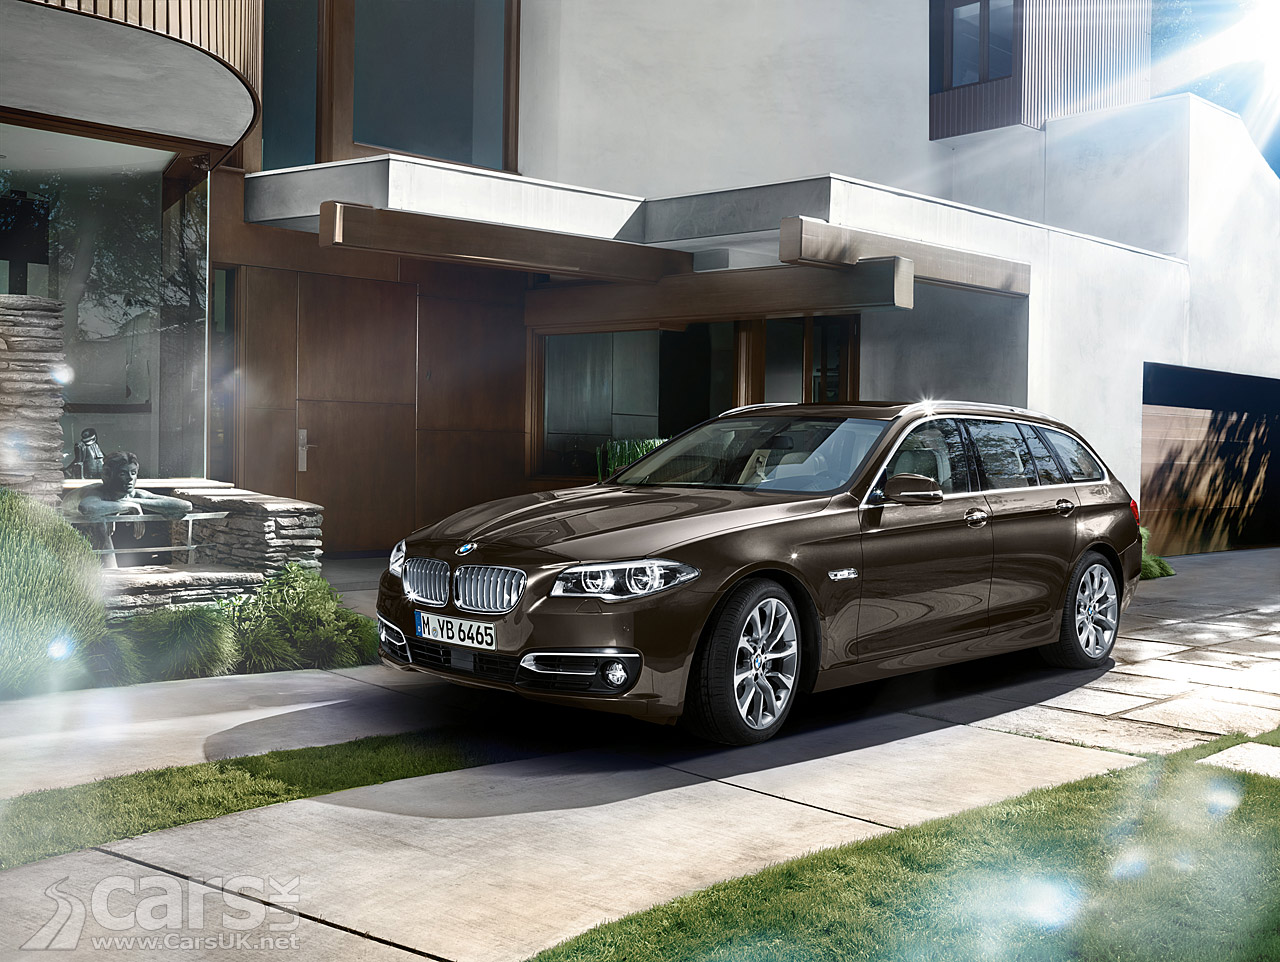 2013 bmw 5 series touring facelift pictures cars uk. Black Bedroom Furniture Sets. Home Design Ideas